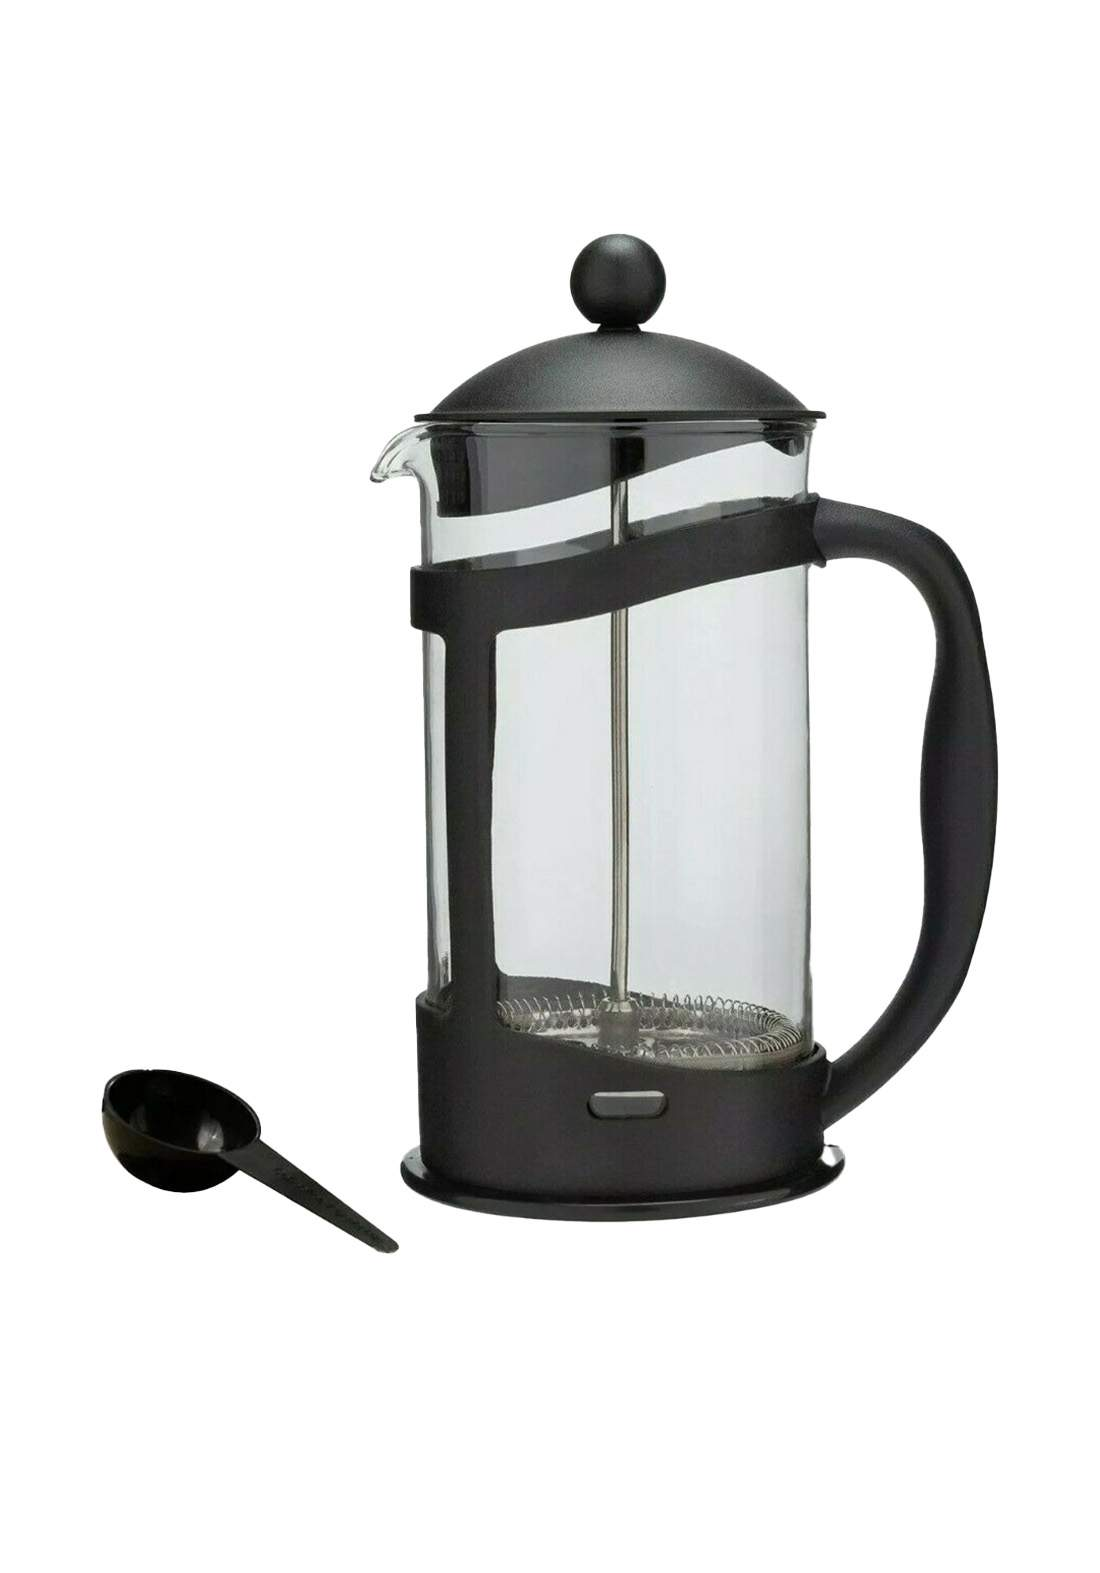 Cafetiere Plunger French Press ماكنة صنع قهوة